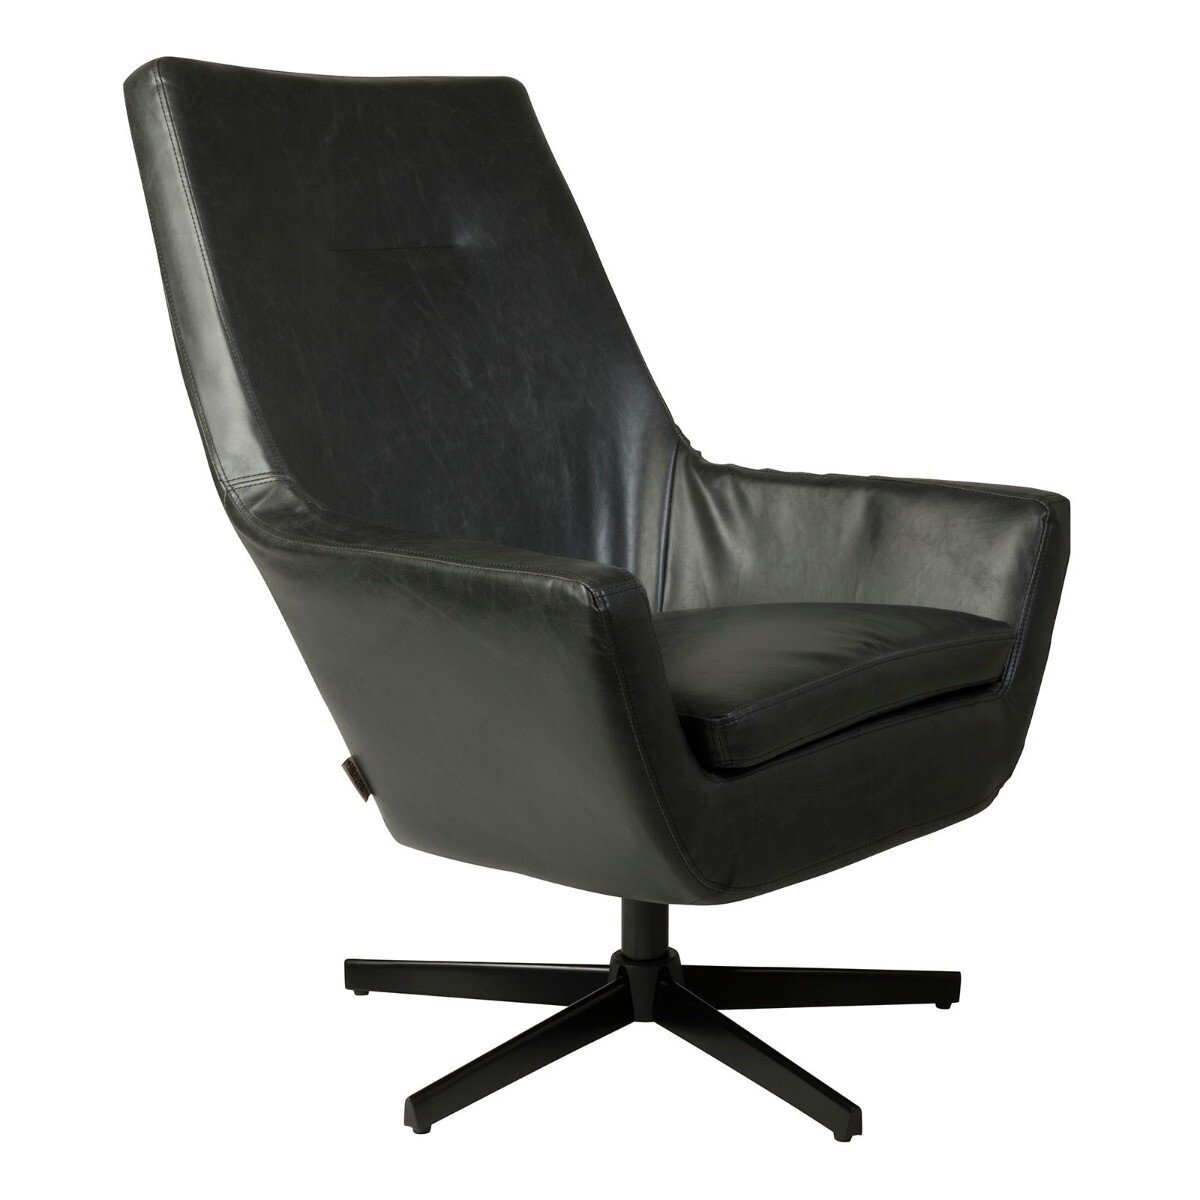 Dutchbone Don Fauteuil 95 cm Black